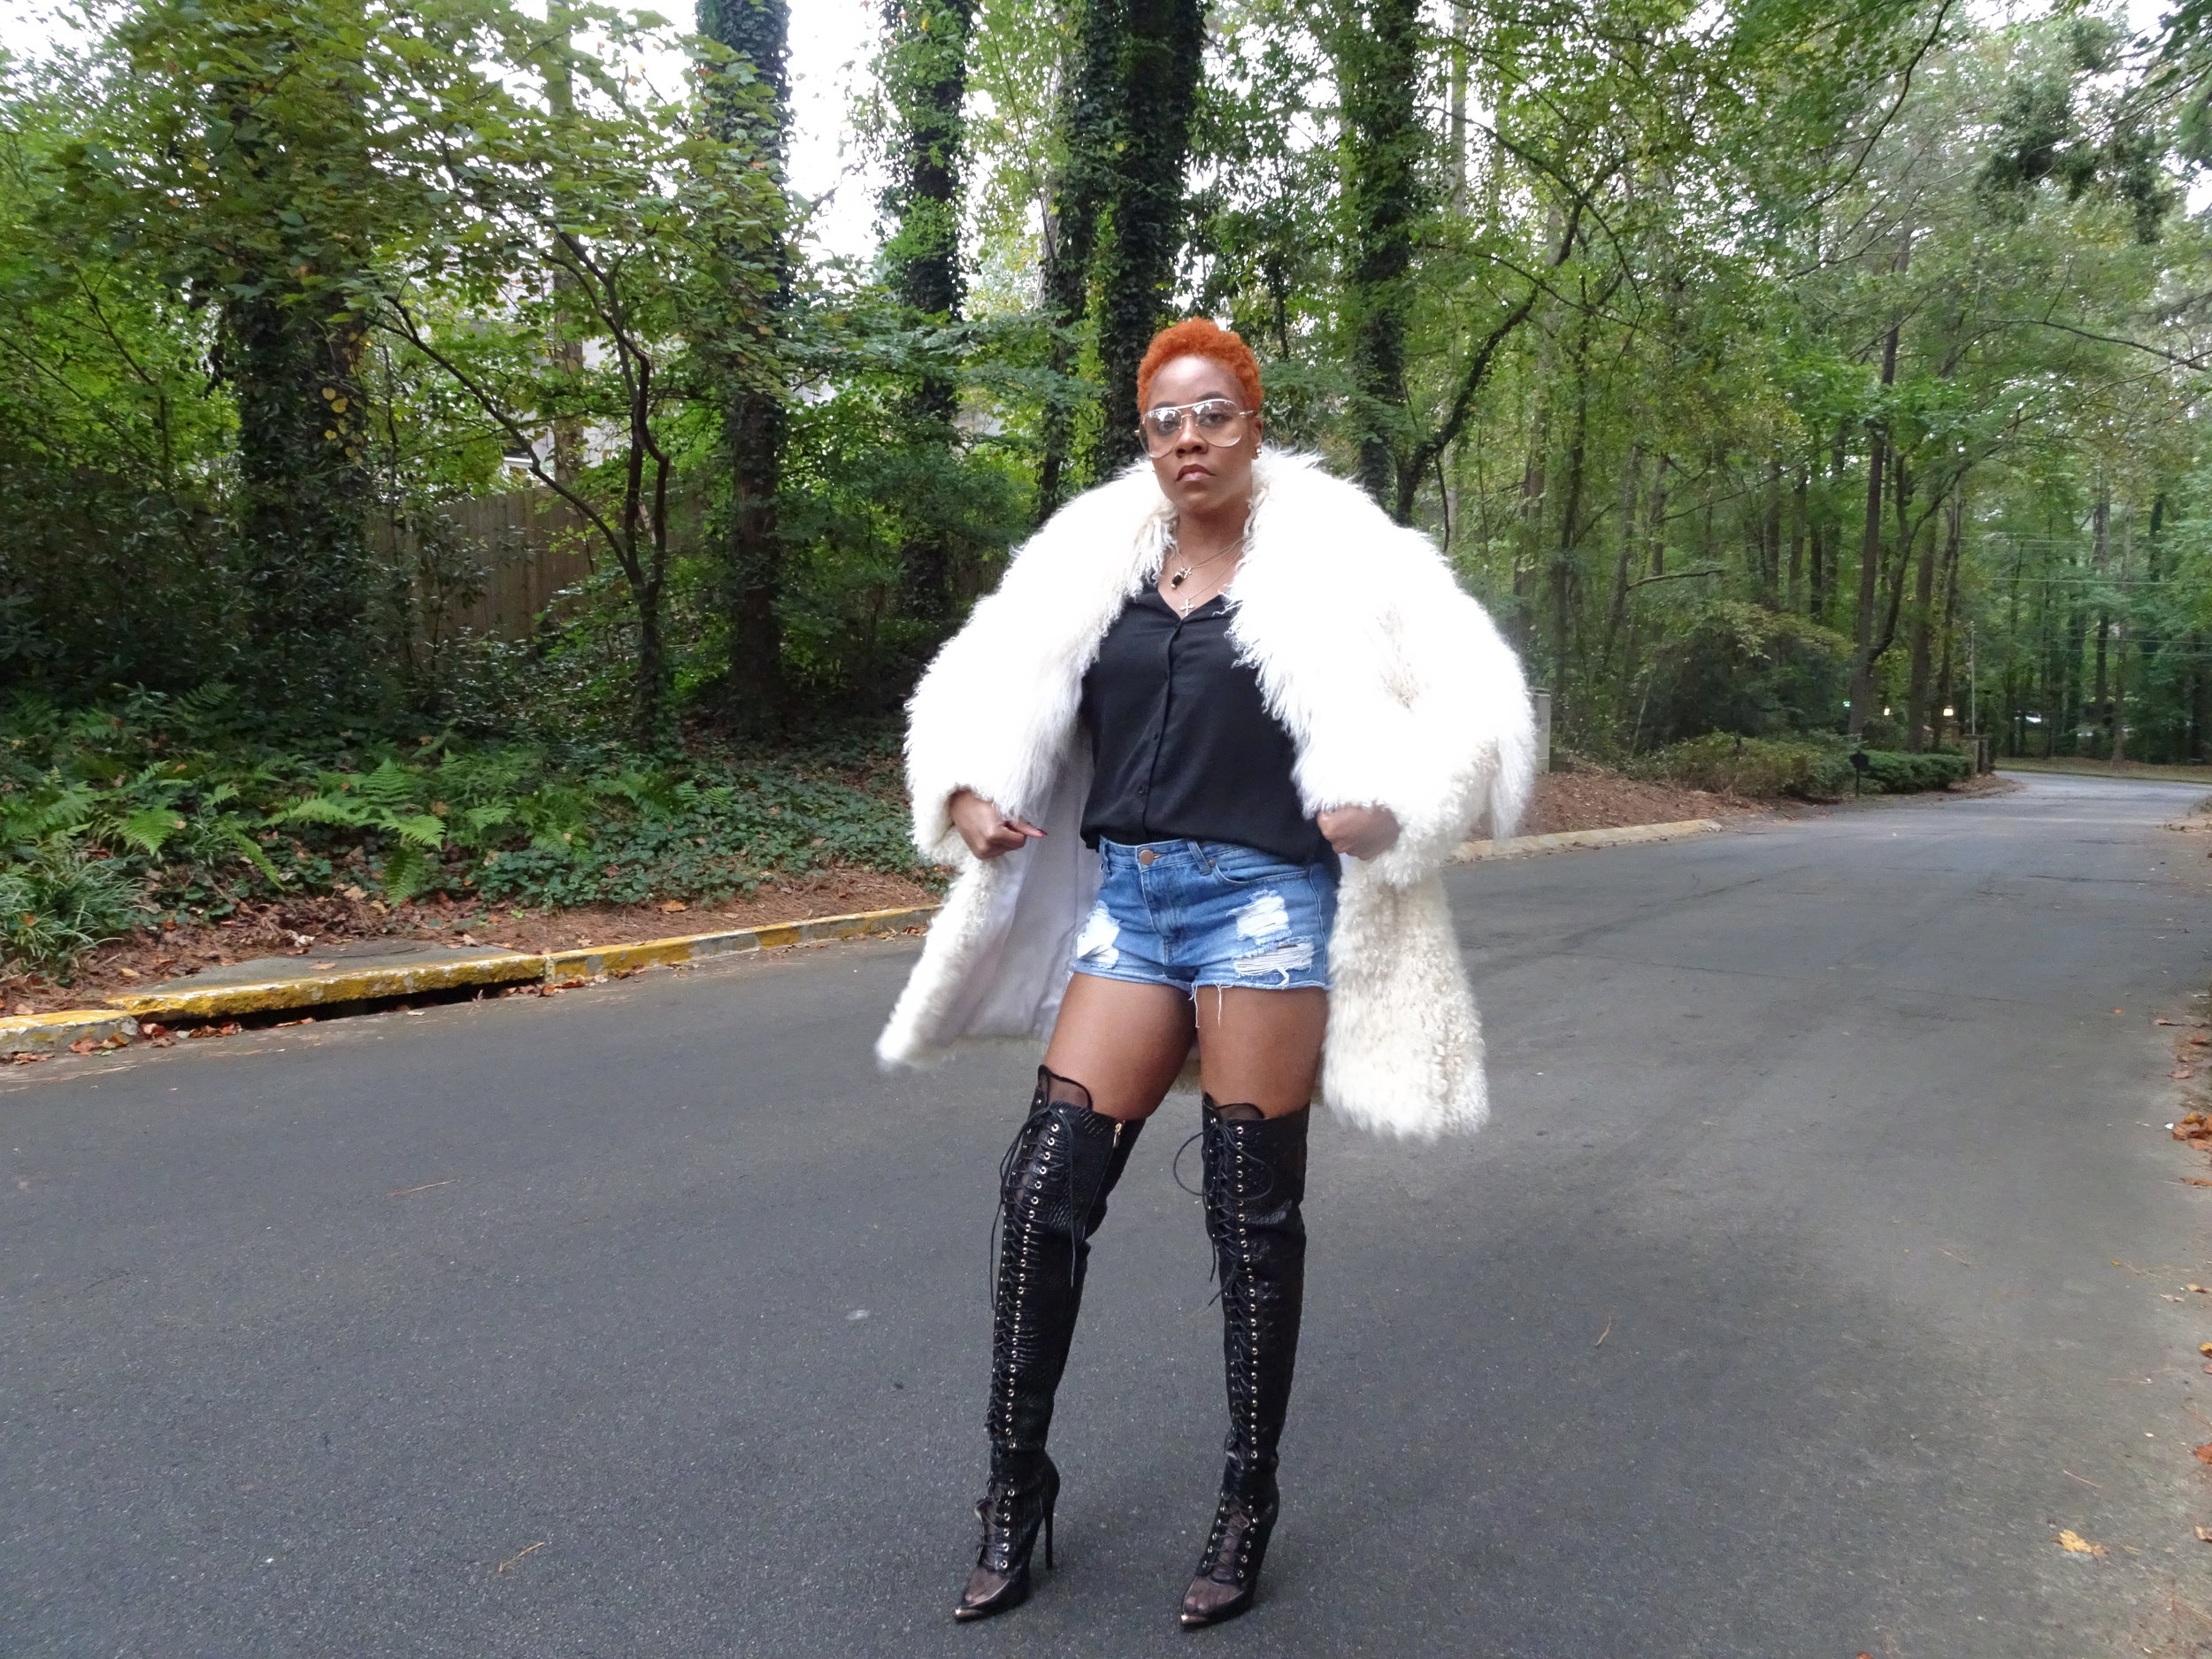 Coat: Vintage; Shirts: ASOS; Shorts: American Eagle; Shoes: TavisPShoes @TaviaPShoes; Glasses: Natural Girls Rock